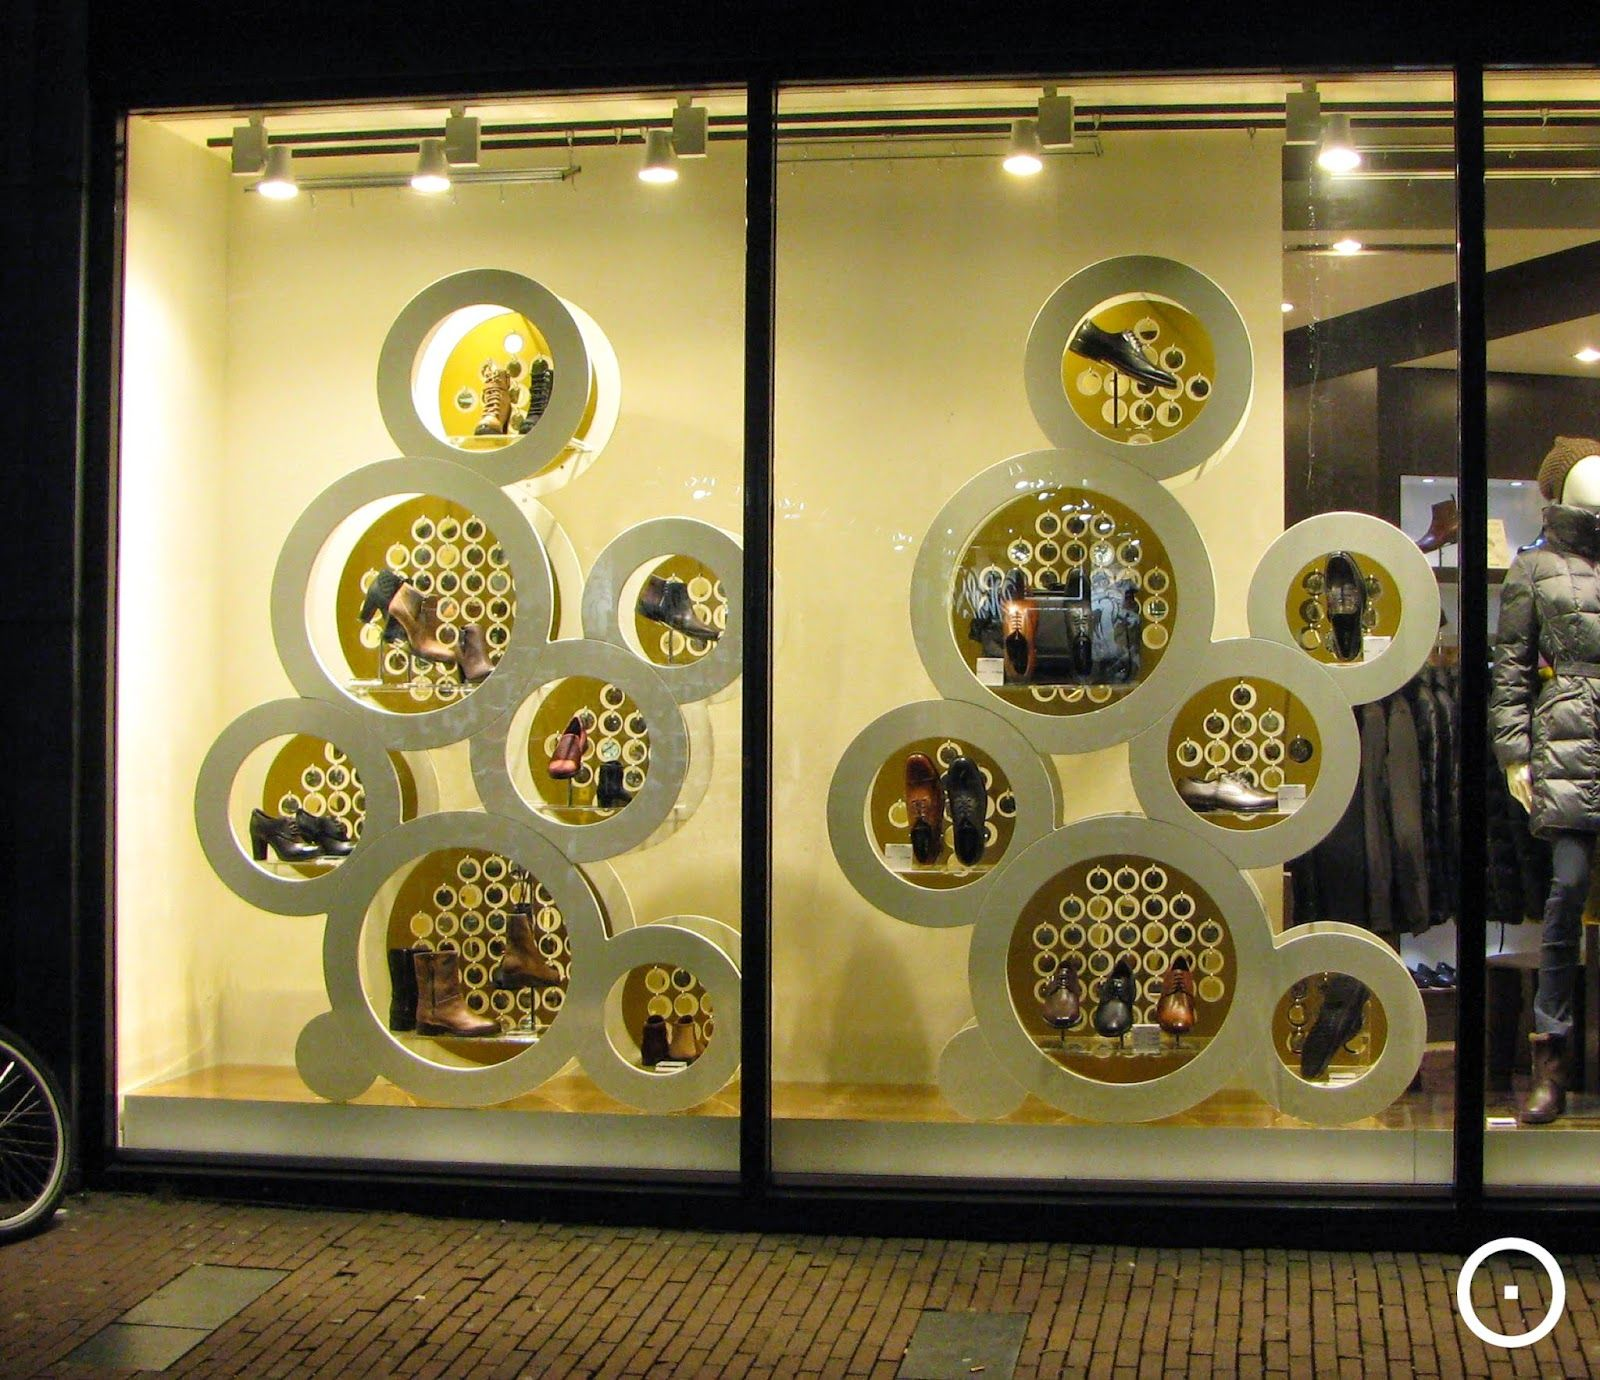 Geox, More Amsterdam Xmas Shopwindows On Httpviewonretailblogspot Shop Window Displaysstore